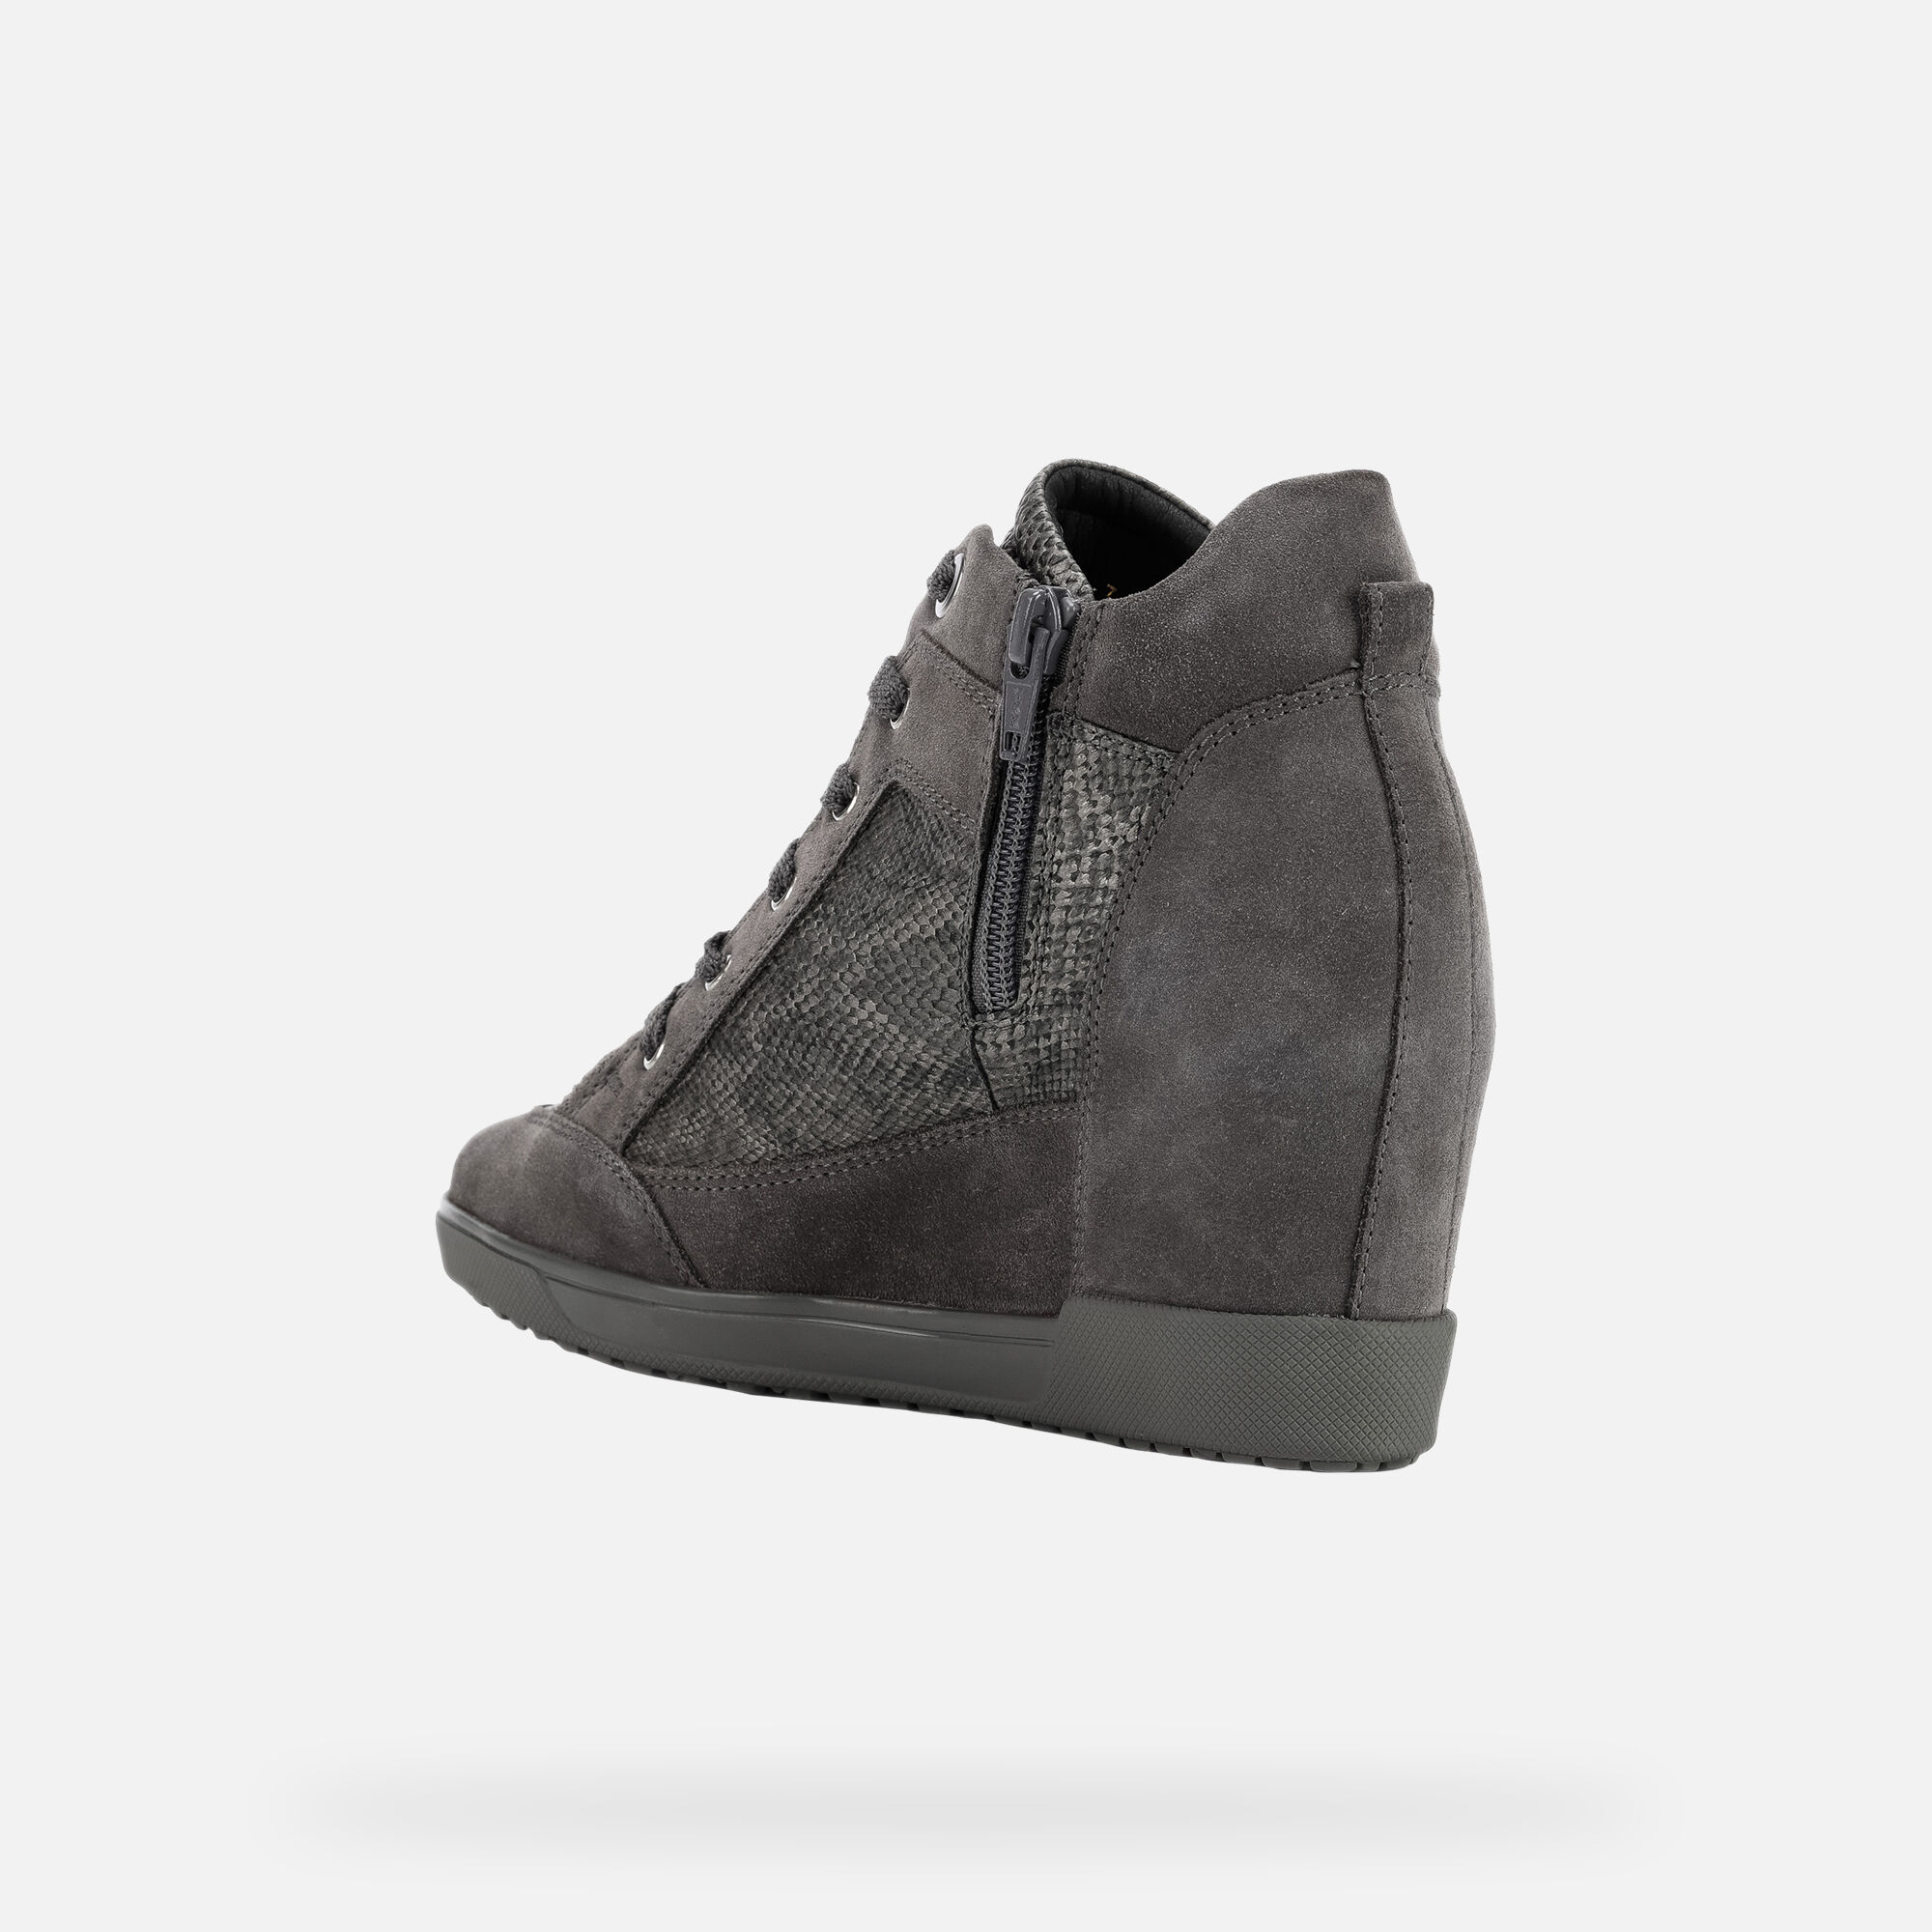 Geox CARUM Femme Sneakers Gris | Geox Automne Hiver